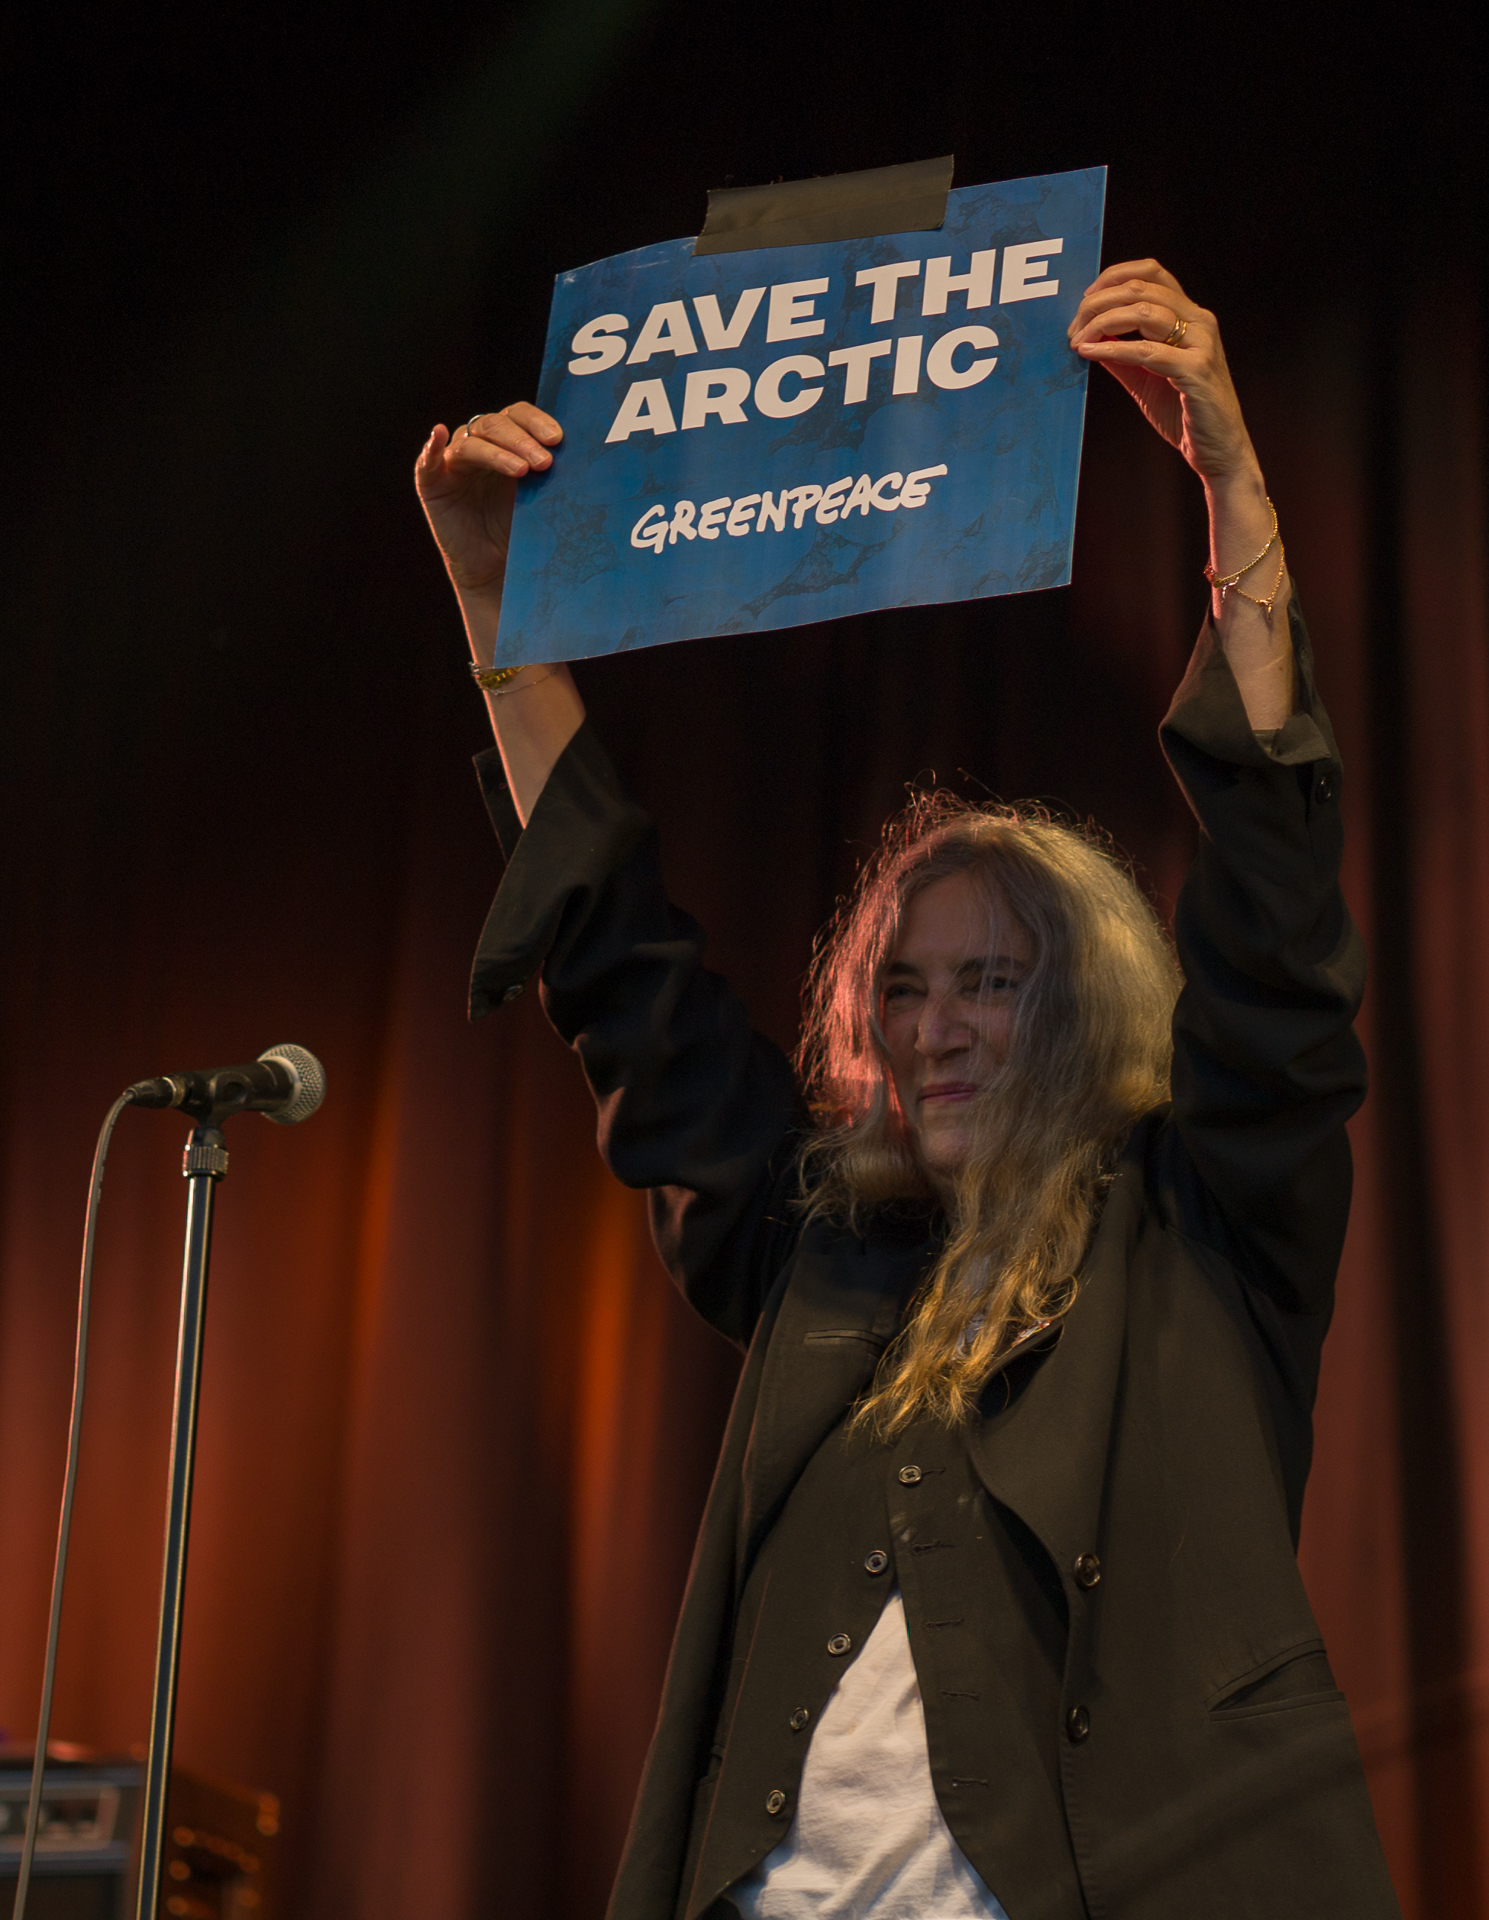 Patti Smith holding sign Magnus